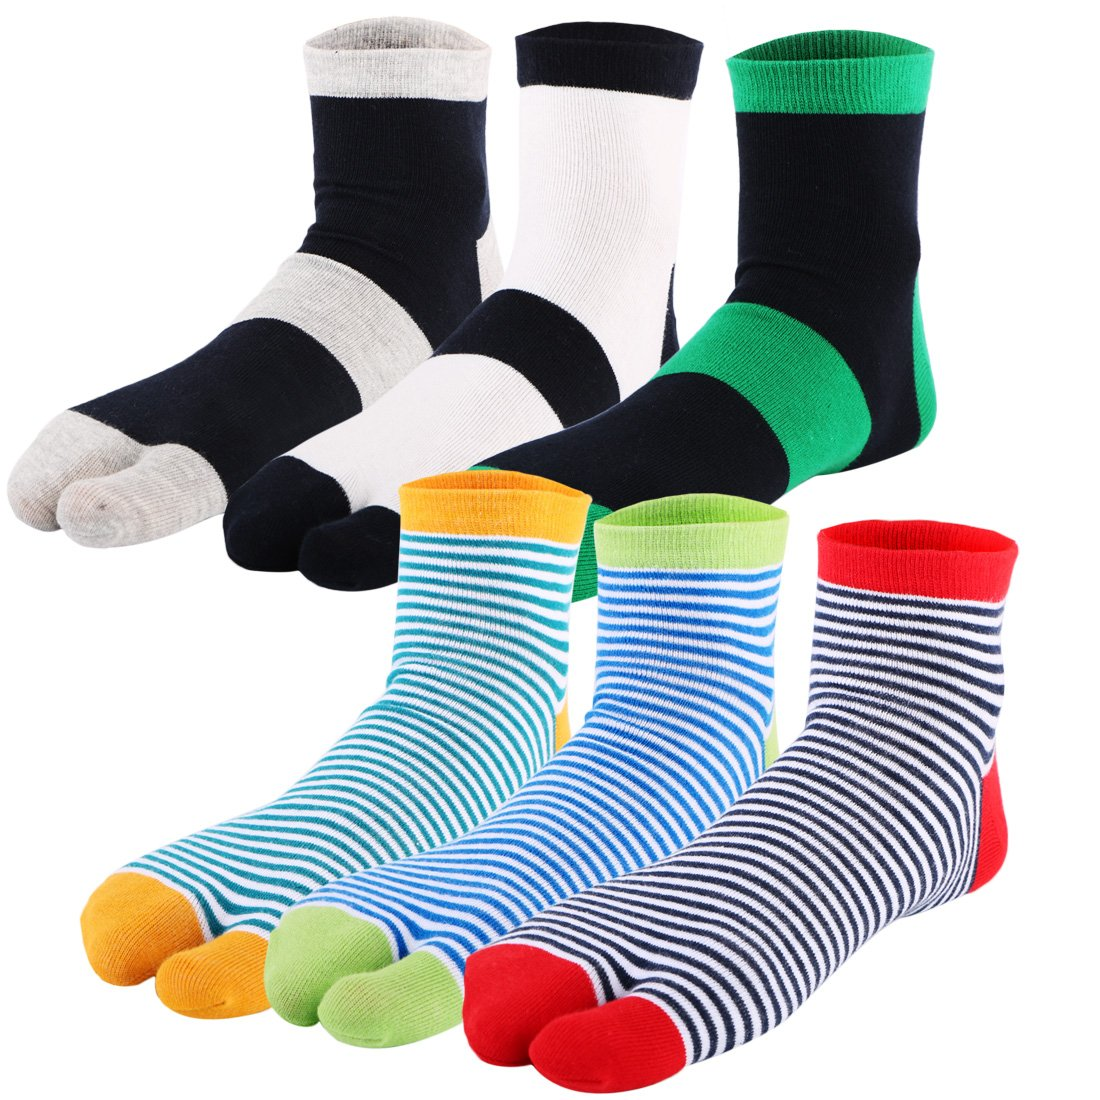 kilofly 6 Pairs Unisex Striped Flip Flop Split 2-Toe Tabi Socks Value Pack FTW517set6